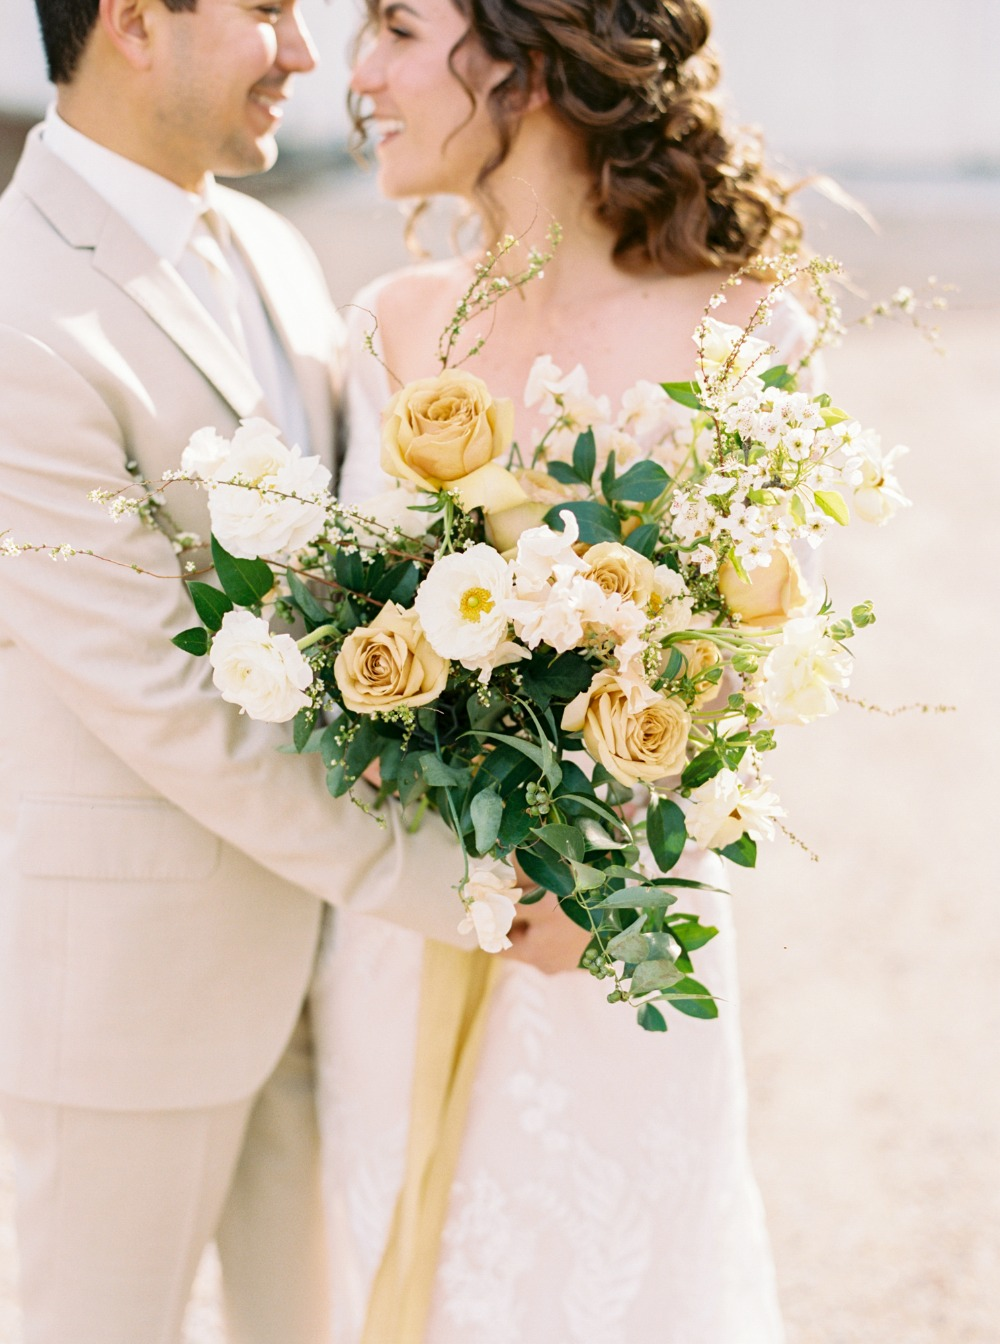 yellow and white wedding bouquet with greenery